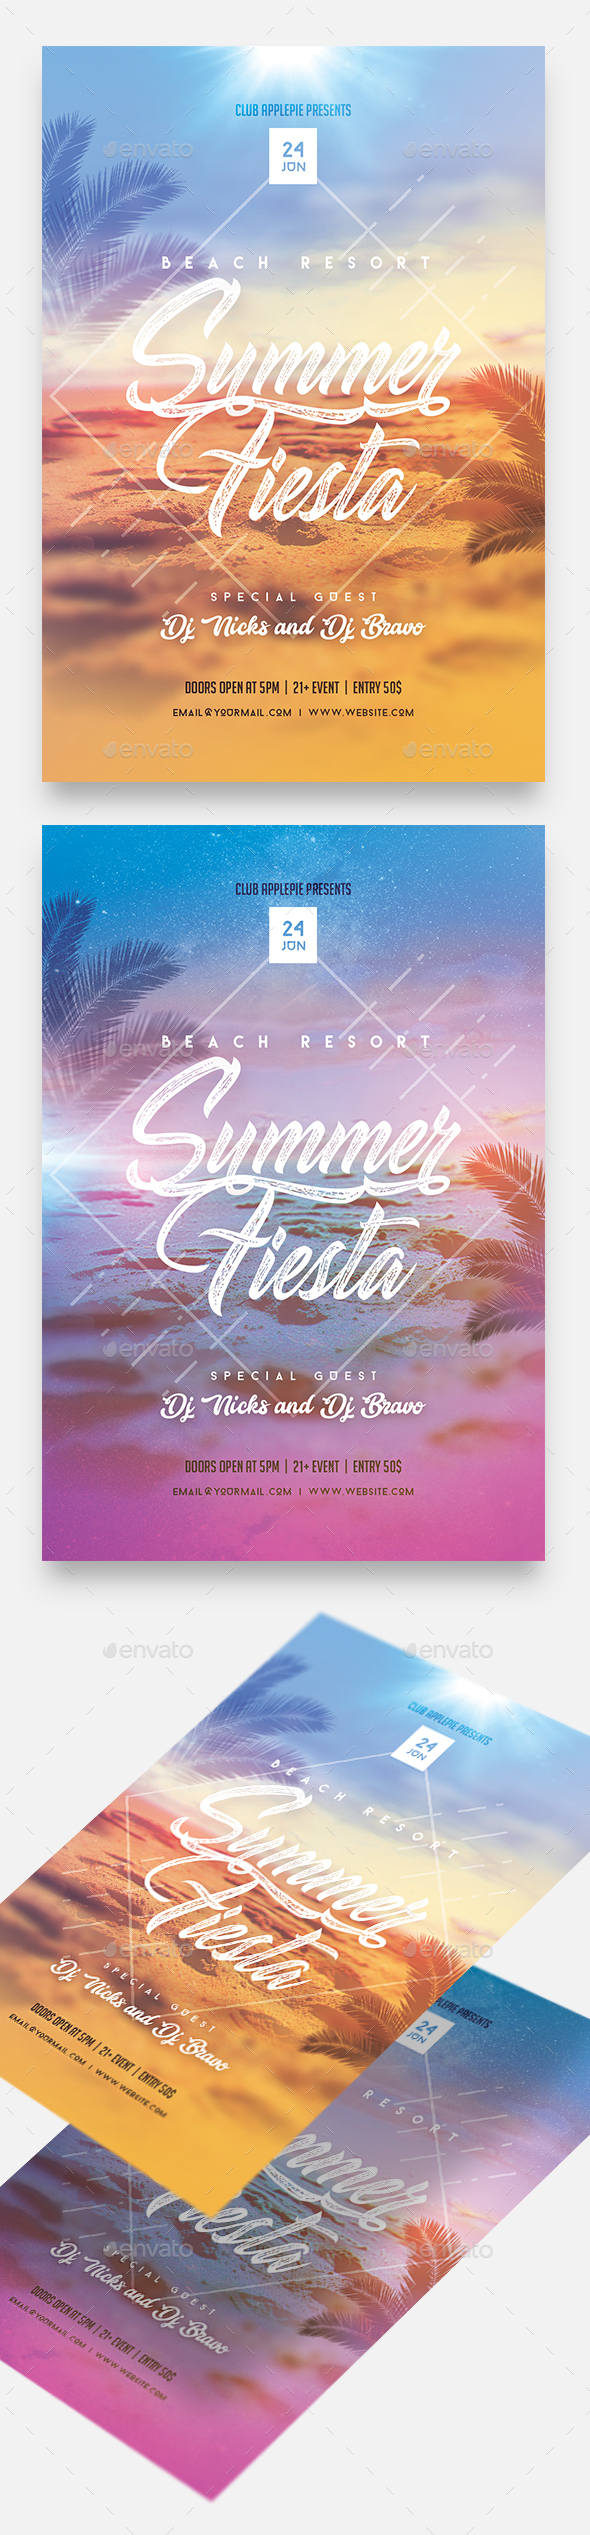 Summer Fiesta Party Flyer - Clubs & Parties Events